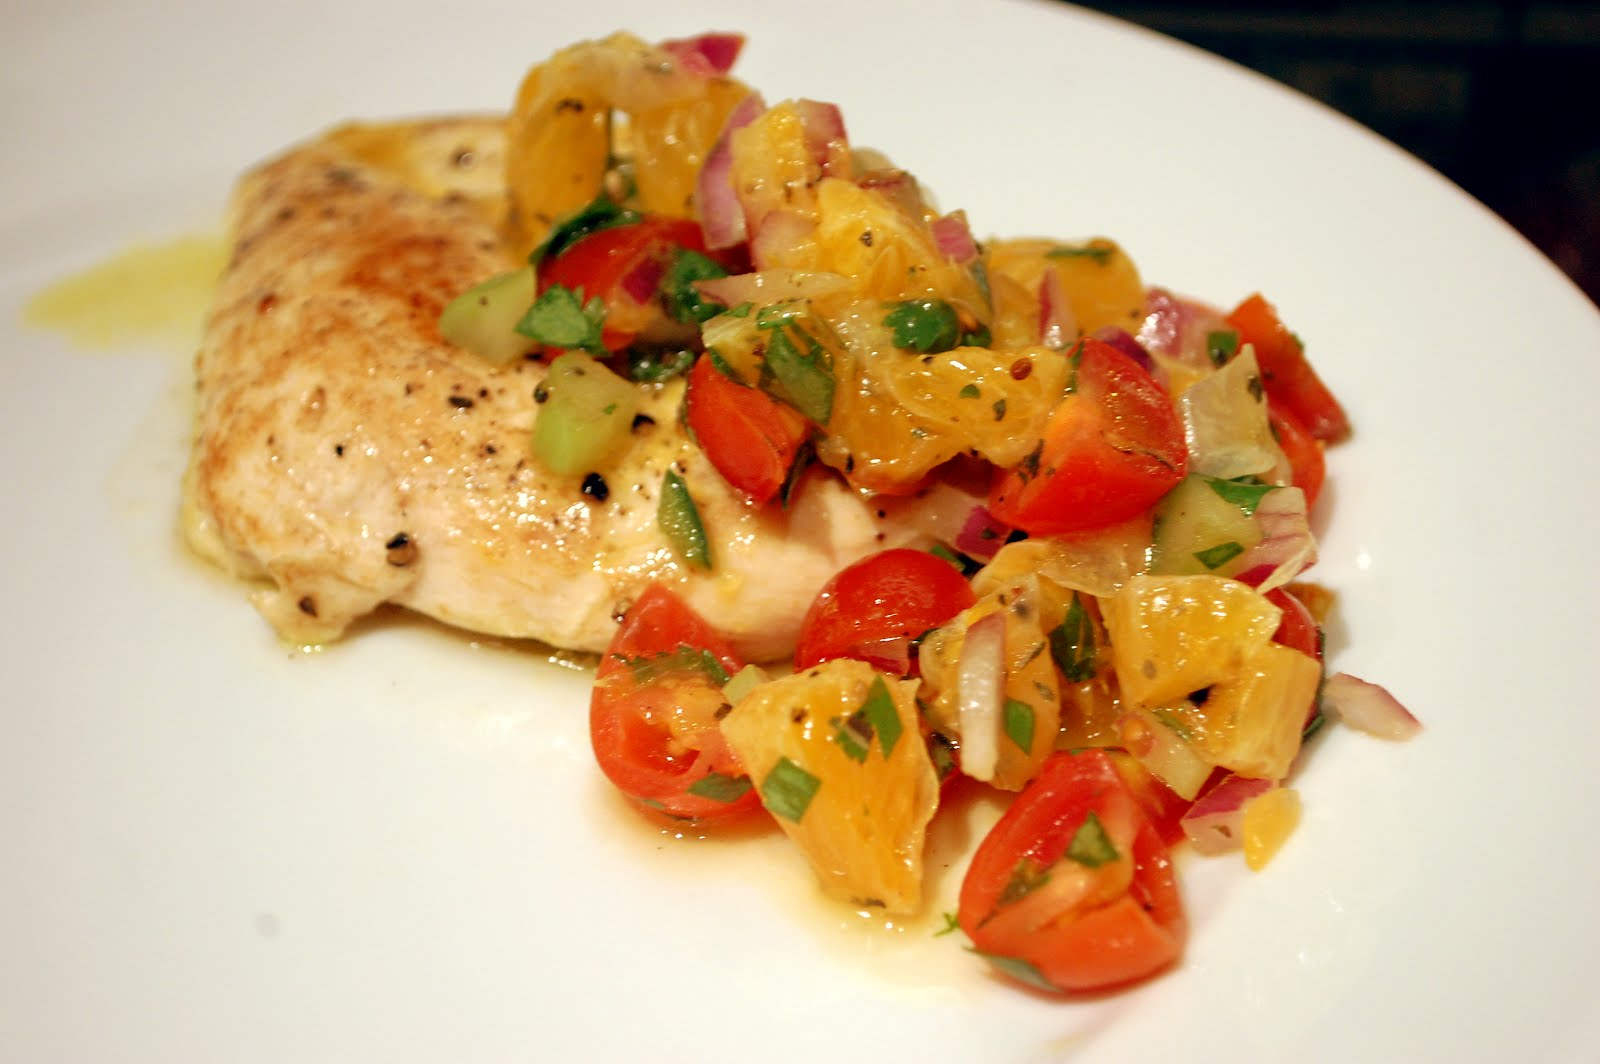 The Skillet Takes: Chicken with Clementine Salsa